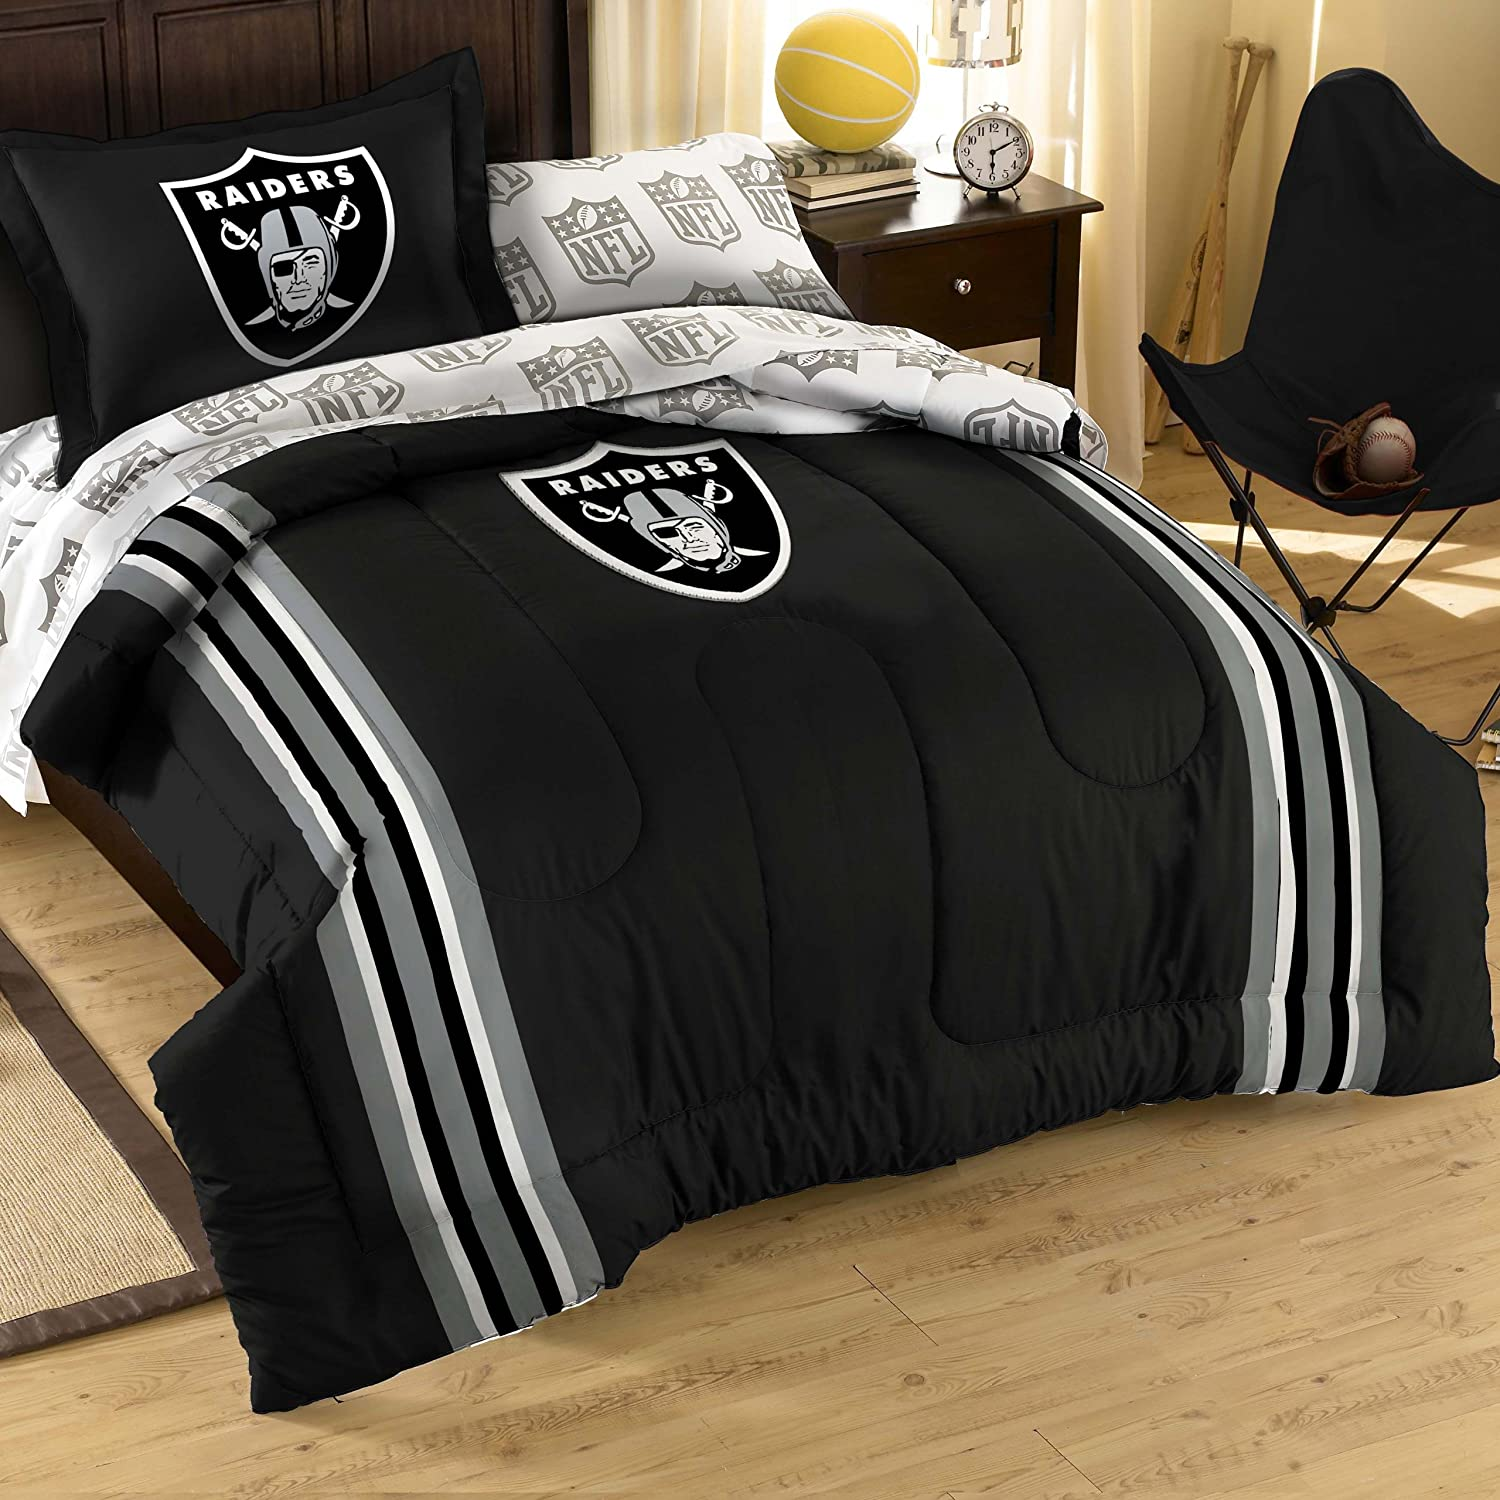 NFL New York Jets Bedding Set